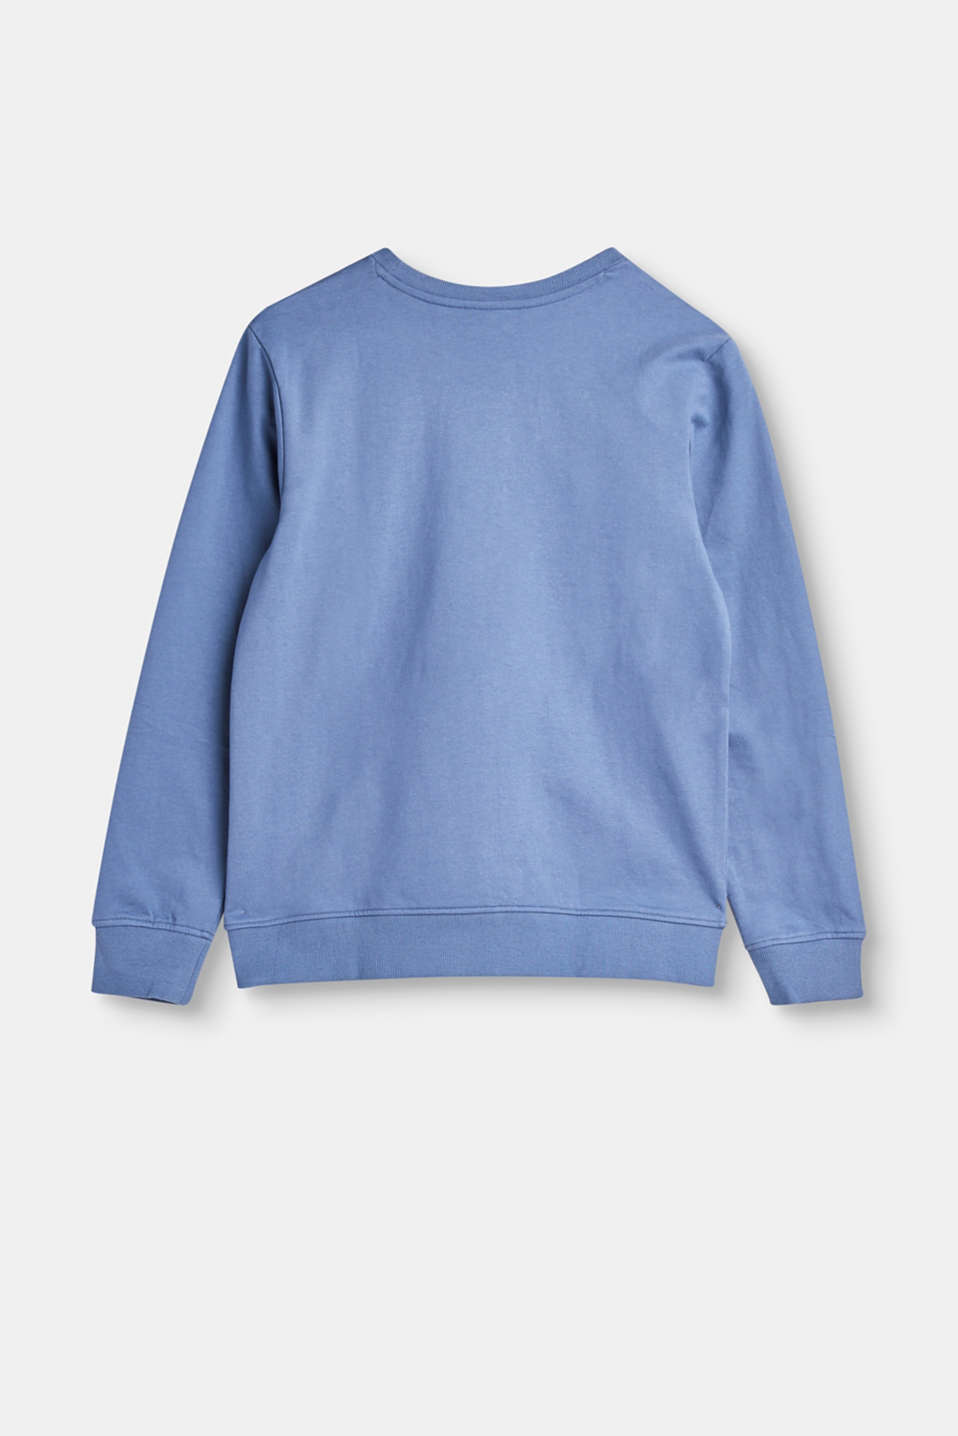 Sweatshirt with a large front print